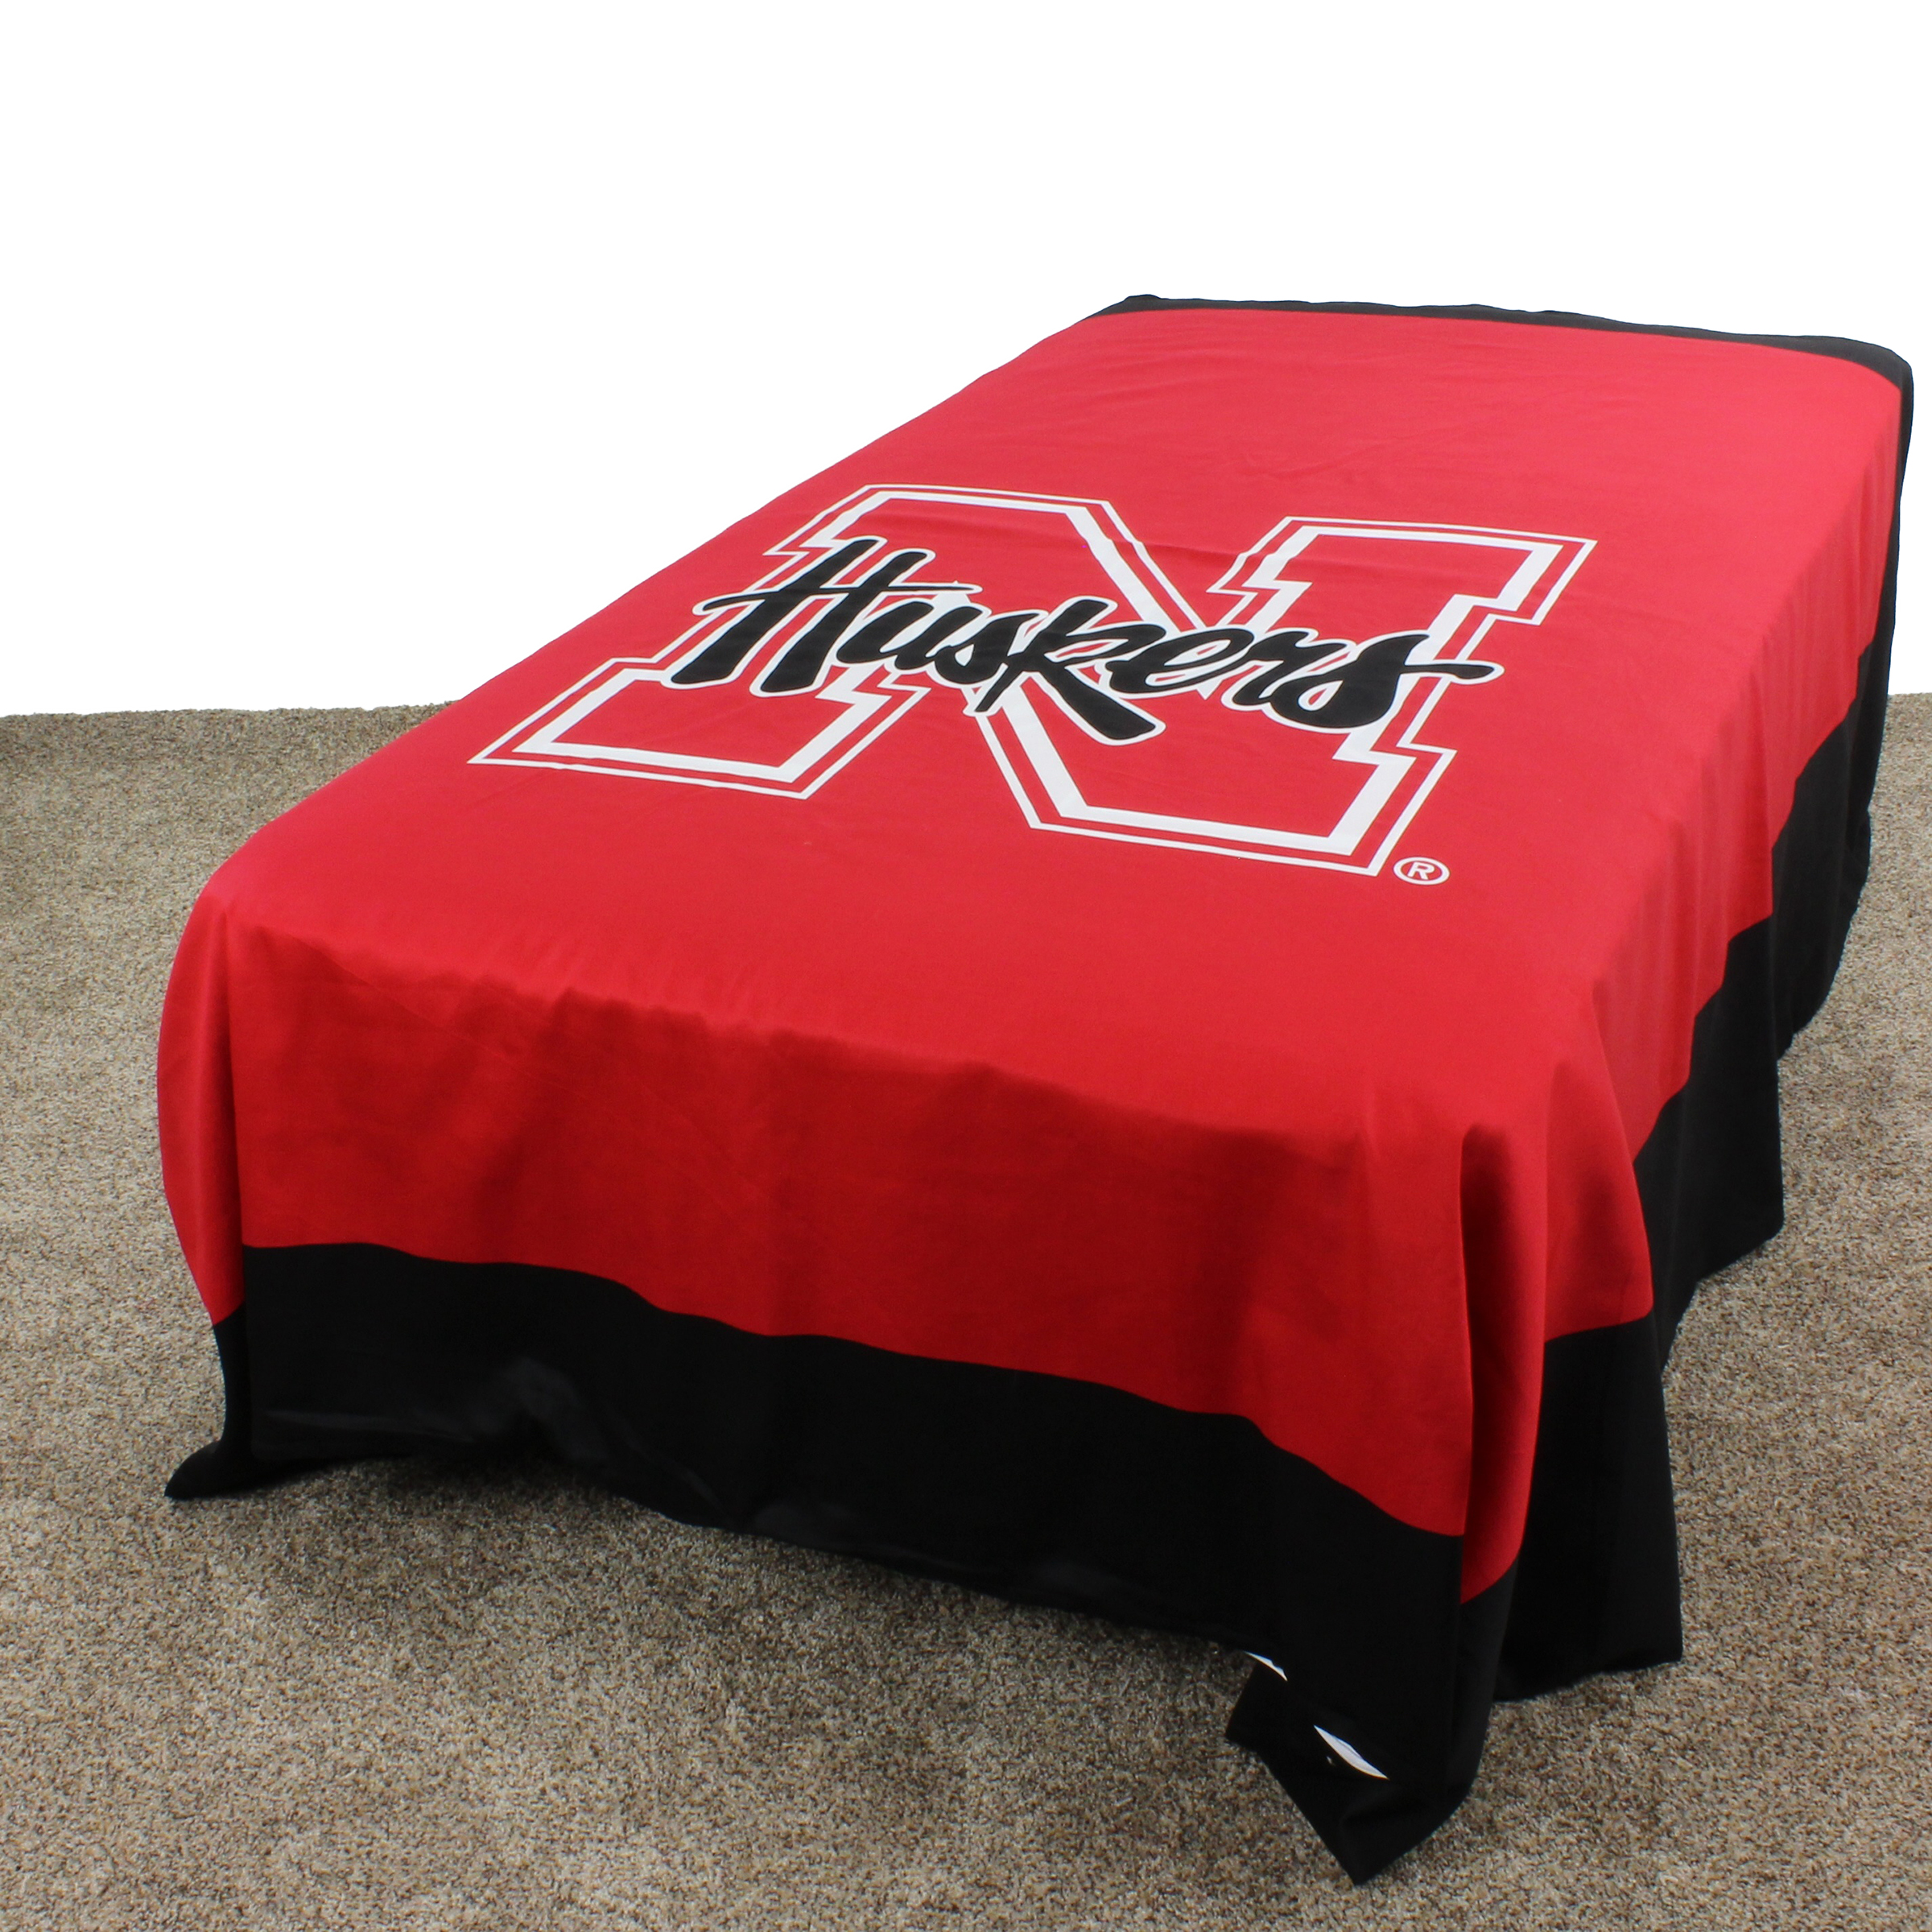 "Nebraska Cornhuskers Duvet Cover / Summer Blanket, 2 Sided Reversible, 100% Cotton, 86"" x 96"", Queen"